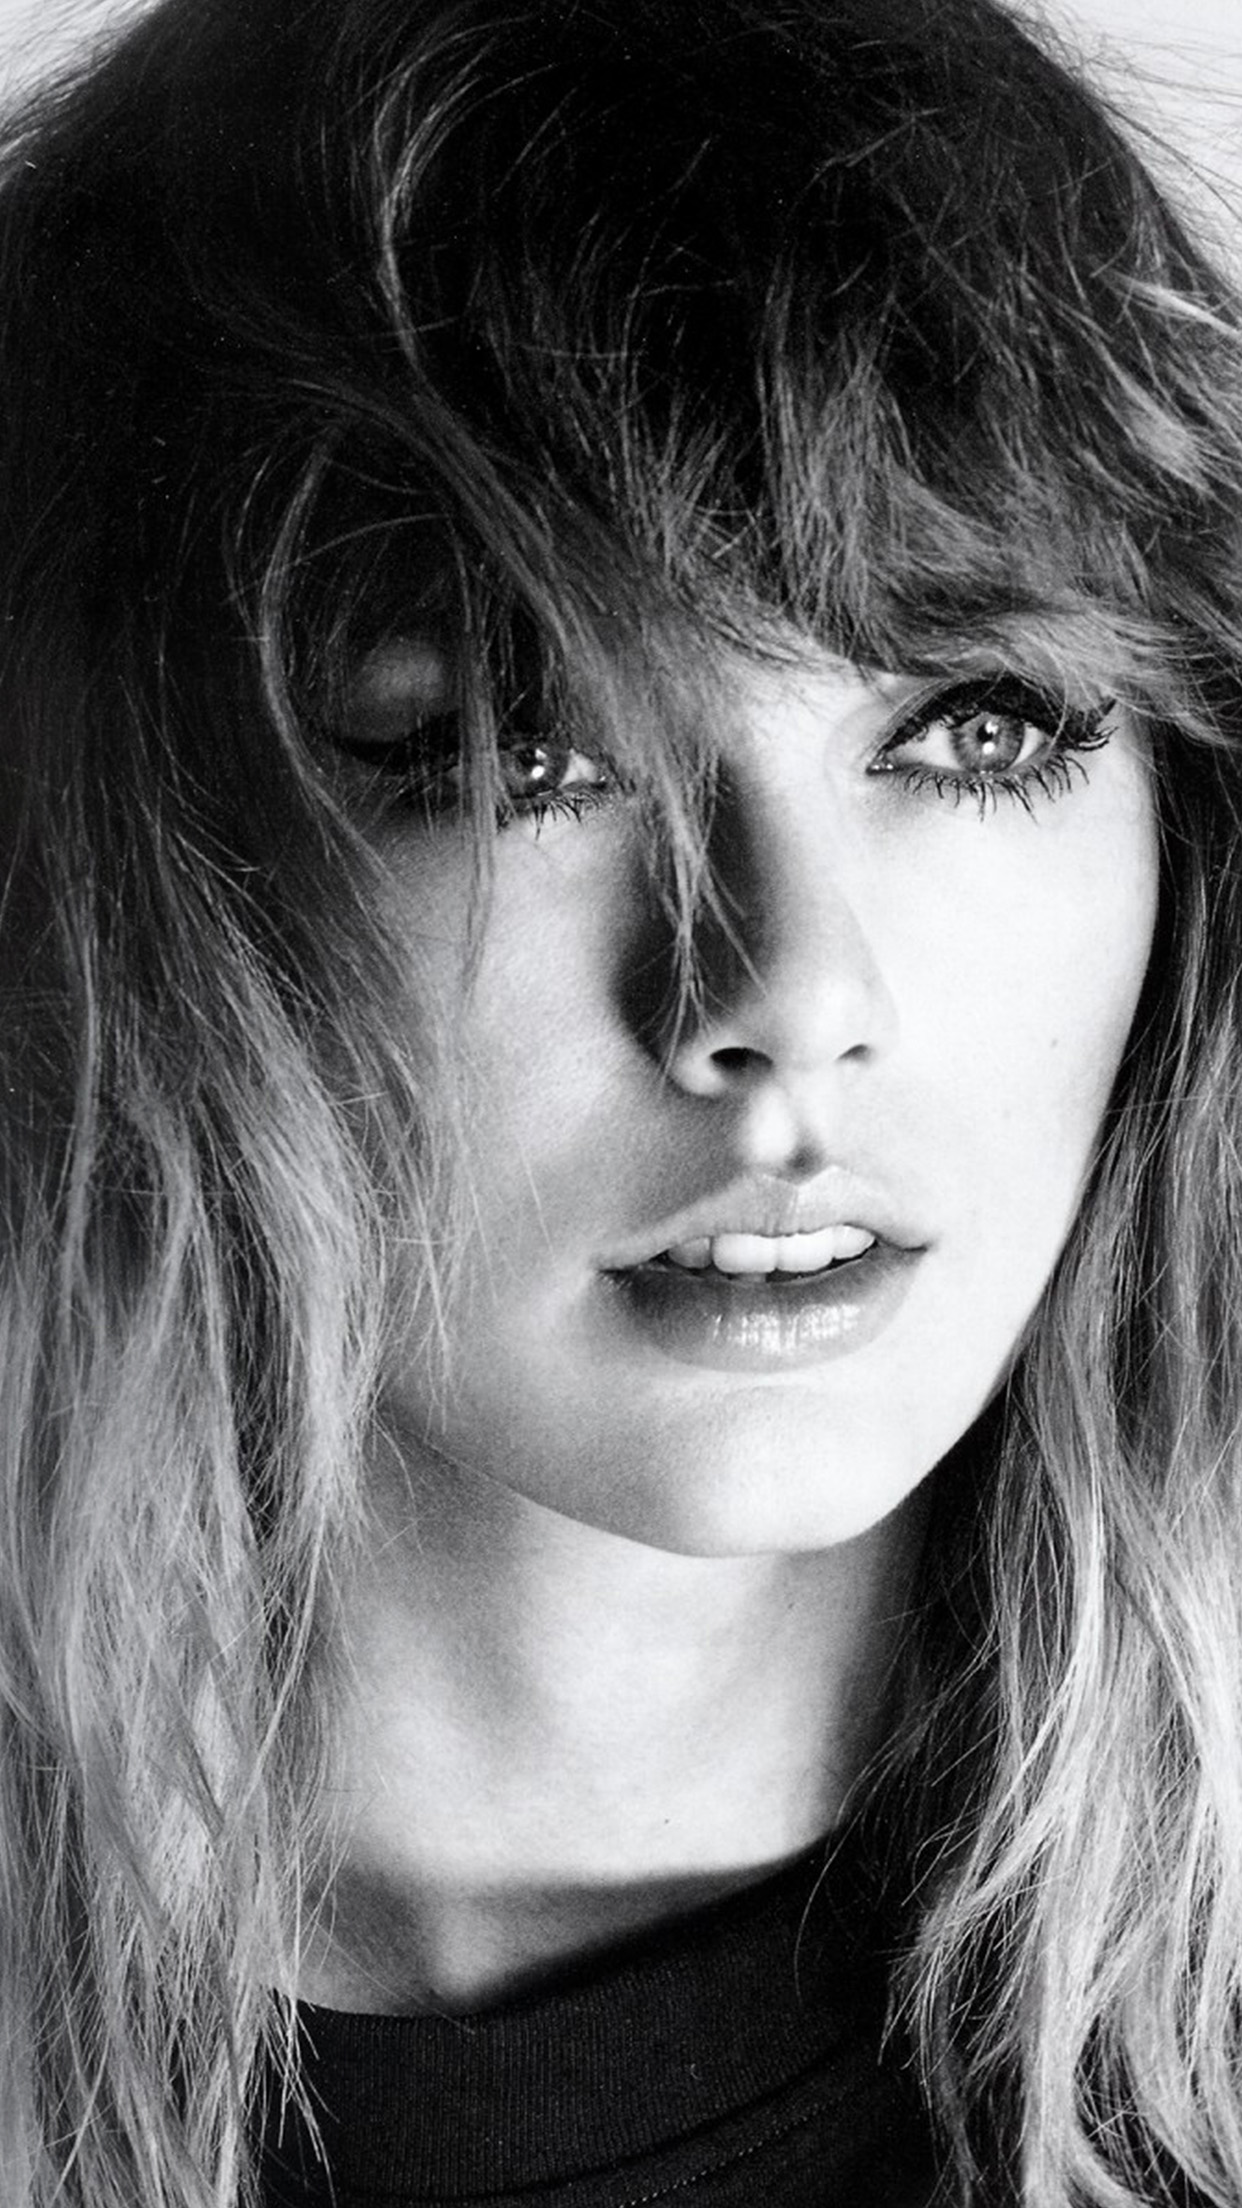 iphone 6 plus taylor swift reputation era 333874 hd wallpaper backgrounds download iphone 6 plus taylor swift reputation